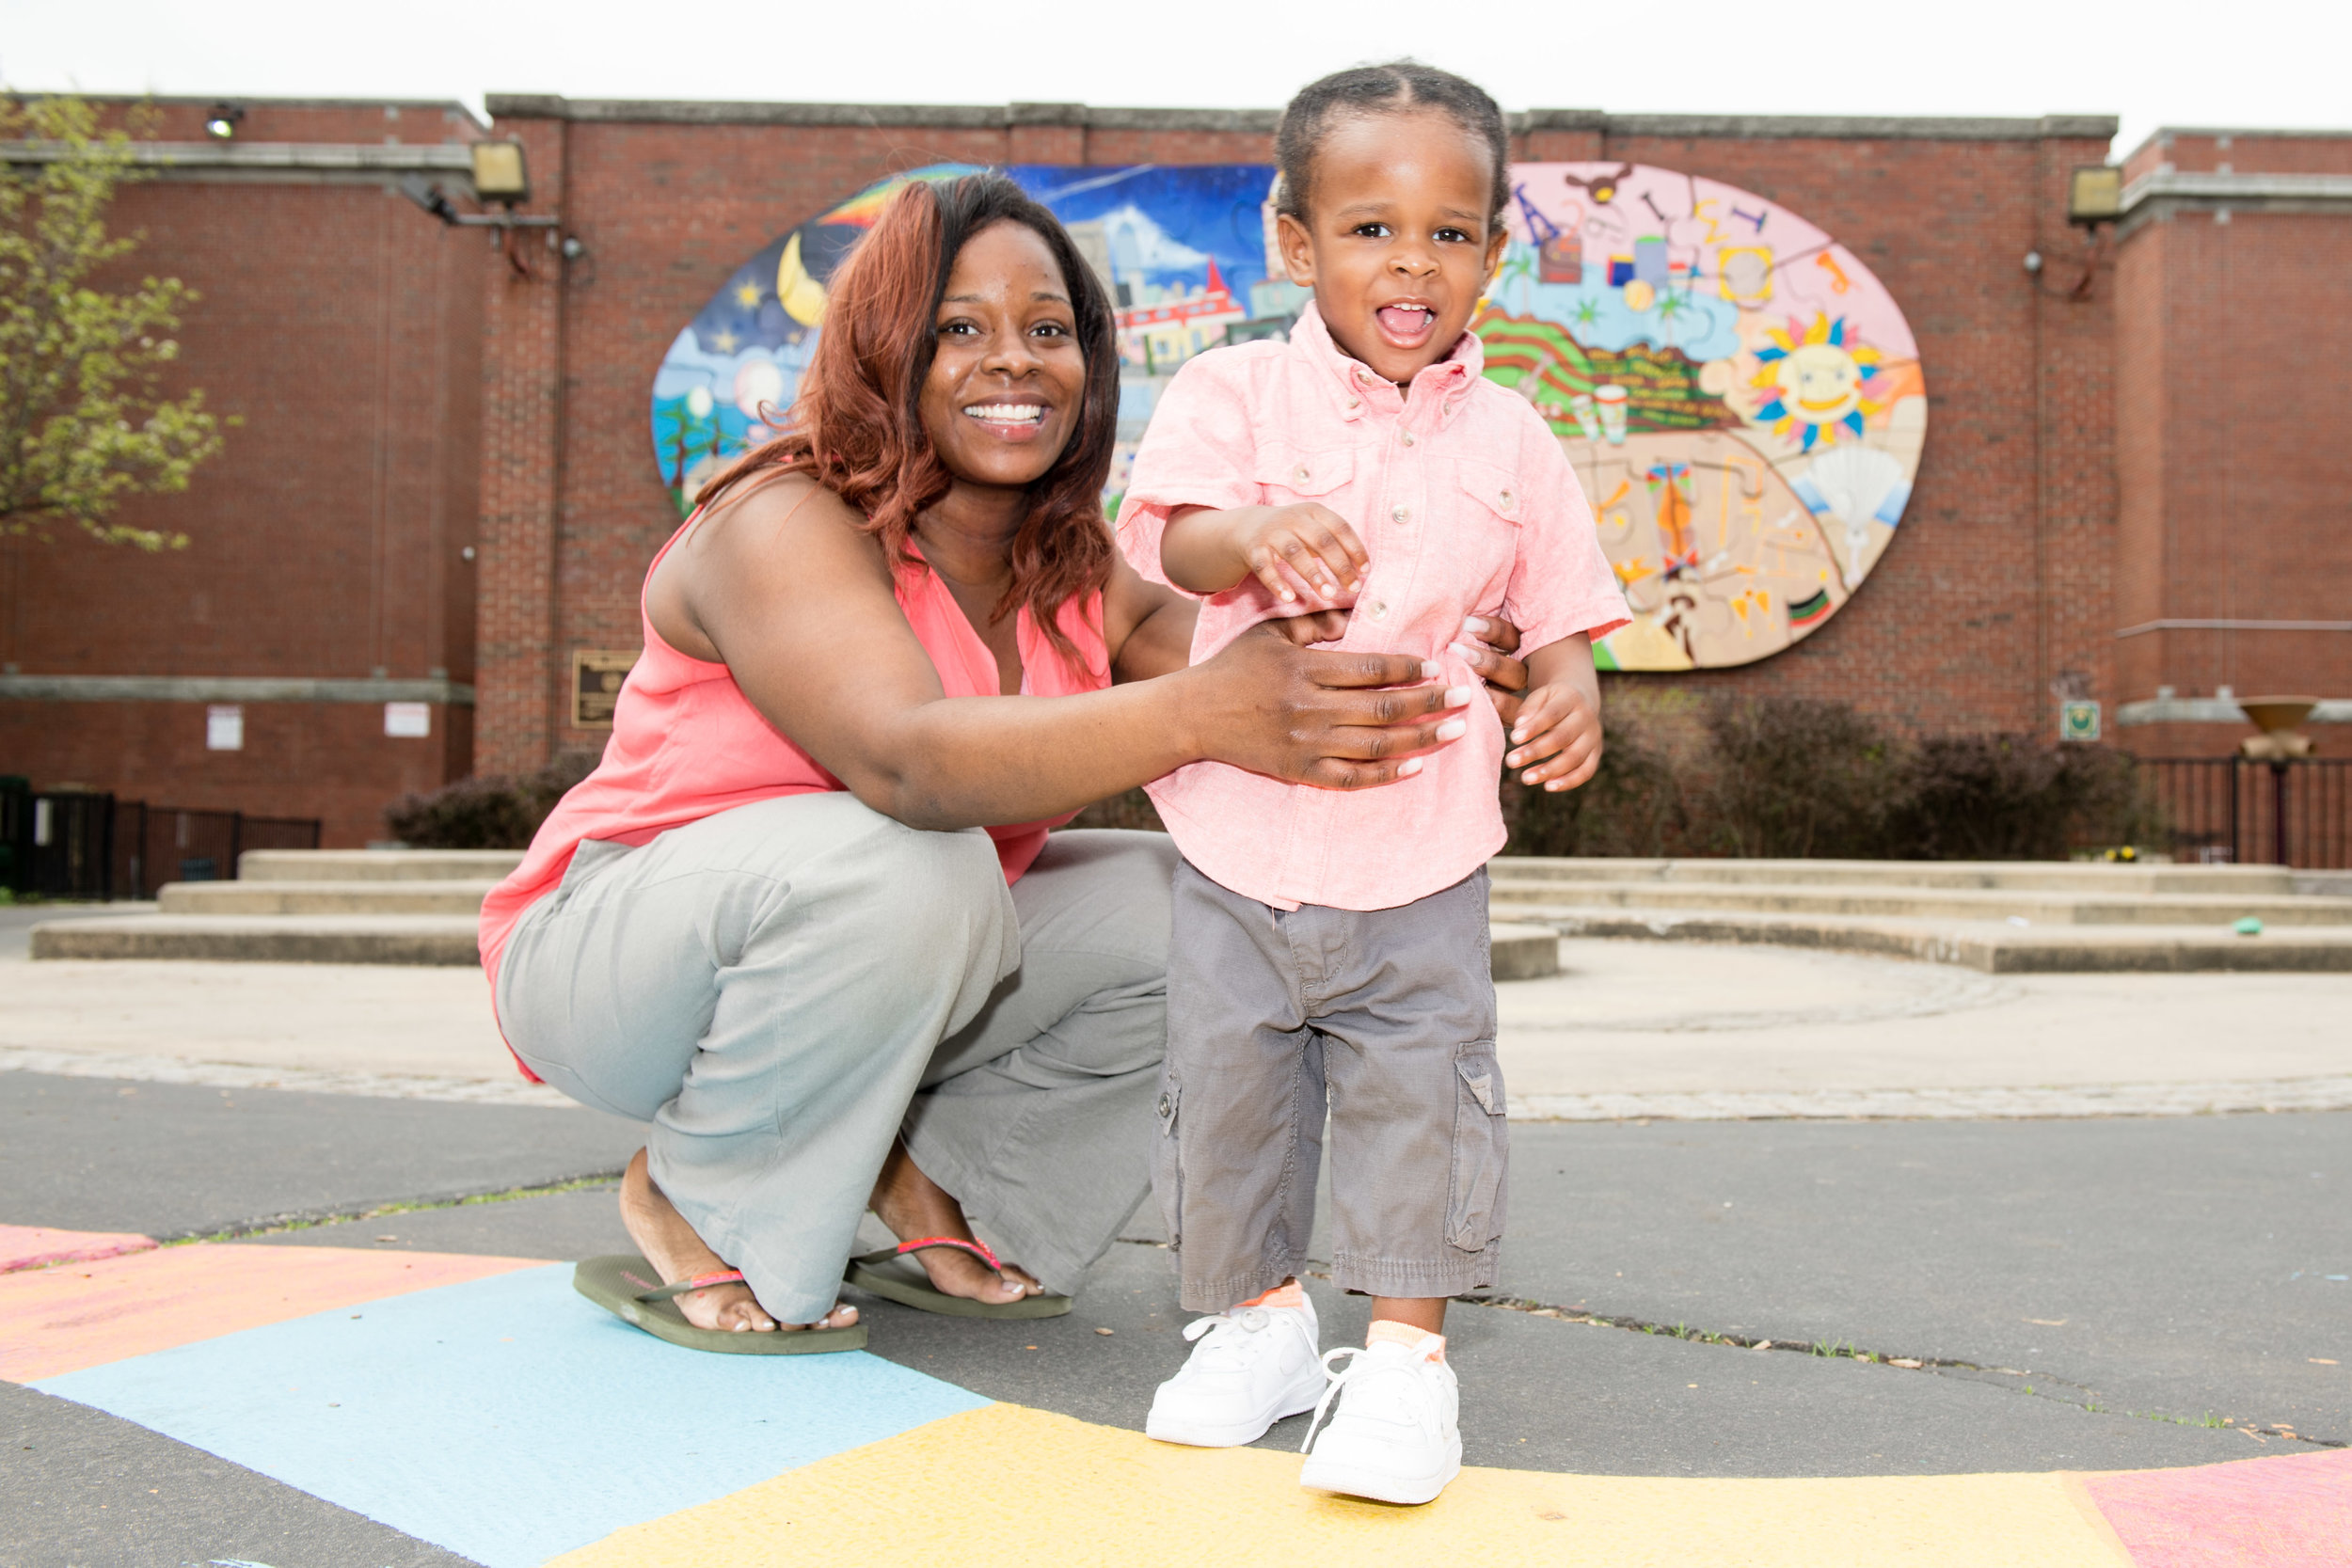 Compass supports families with low incomes to build assets and financial capabilities as a pathway to greater economic opportunity, and out of poverty.